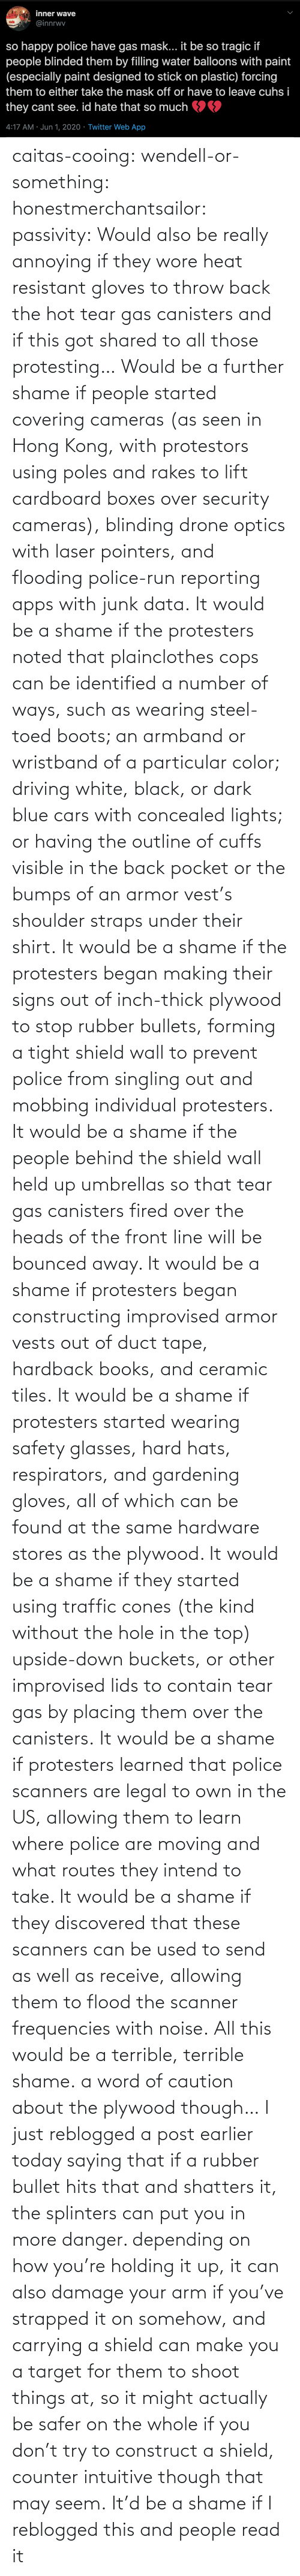 hot: caitas-cooing:  wendell-or-something: honestmerchantsailor:  passivity: Would also be really annoying if they wore heat resistant gloves to throw back the hot tear gas canisters and if this got shared to all those protesting… Would be a further shame if people started covering cameras (as seen in Hong Kong, with protestors using poles and rakes to lift cardboard boxes over security cameras), blinding drone optics with laser pointers, and flooding police-run reporting apps with junk data. It would be a shame if the protesters noted that plainclothes cops can be identified a number of ways, such as wearing steel-toed boots; an armband or wristband of a particular color; driving white, black, or dark blue cars with concealed lights; or having the outline of cuffs visible in the back pocket or the bumps of an armor vest's shoulder straps under their shirt. It would be a shame if the protesters began making their signs out of inch-thick plywood to stop rubber bullets, forming a tight shield wall to prevent police from singling out and mobbing individual protesters. It would be a shame if the people behind the shield wall held up umbrellas so that tear gas canisters fired over the heads of the front line will be bounced away. It would be a shame if protesters began constructing improvised armor vests out of duct tape, hardback books, and ceramic tiles. It would be a shame if protesters started wearing safety glasses, hard hats, respirators, and gardening gloves, all of which can be found at the same hardware stores as the plywood. It would be a shame if they started using traffic cones (the kind without the hole in the top) upside-down buckets, or other improvised lids to contain tear gas by placing them over the canisters. It would be a shame if protesters learned that police scanners are legal to own in the US, allowing them to learn where police are moving and what routes they intend to take. It would be a shame if they discovered that these scanners can be used to send as well as receive, allowing them to flood the scanner frequencies with noise. All this would be a terrible, terrible shame.    a word of caution about the plywood though… I just reblogged a post earlier today saying that if a rubber bullet hits that and shatters it, the splinters can put you in more danger. depending on how you're holding it up, it can also damage your arm if you've strapped it on somehow, and carrying a shield can make you a target for them to shoot things at, so it might actually be safer on the whole if you don't try to construct a shield, counter intuitive though that may seem.    It'd be a shame if I reblogged this and people read it